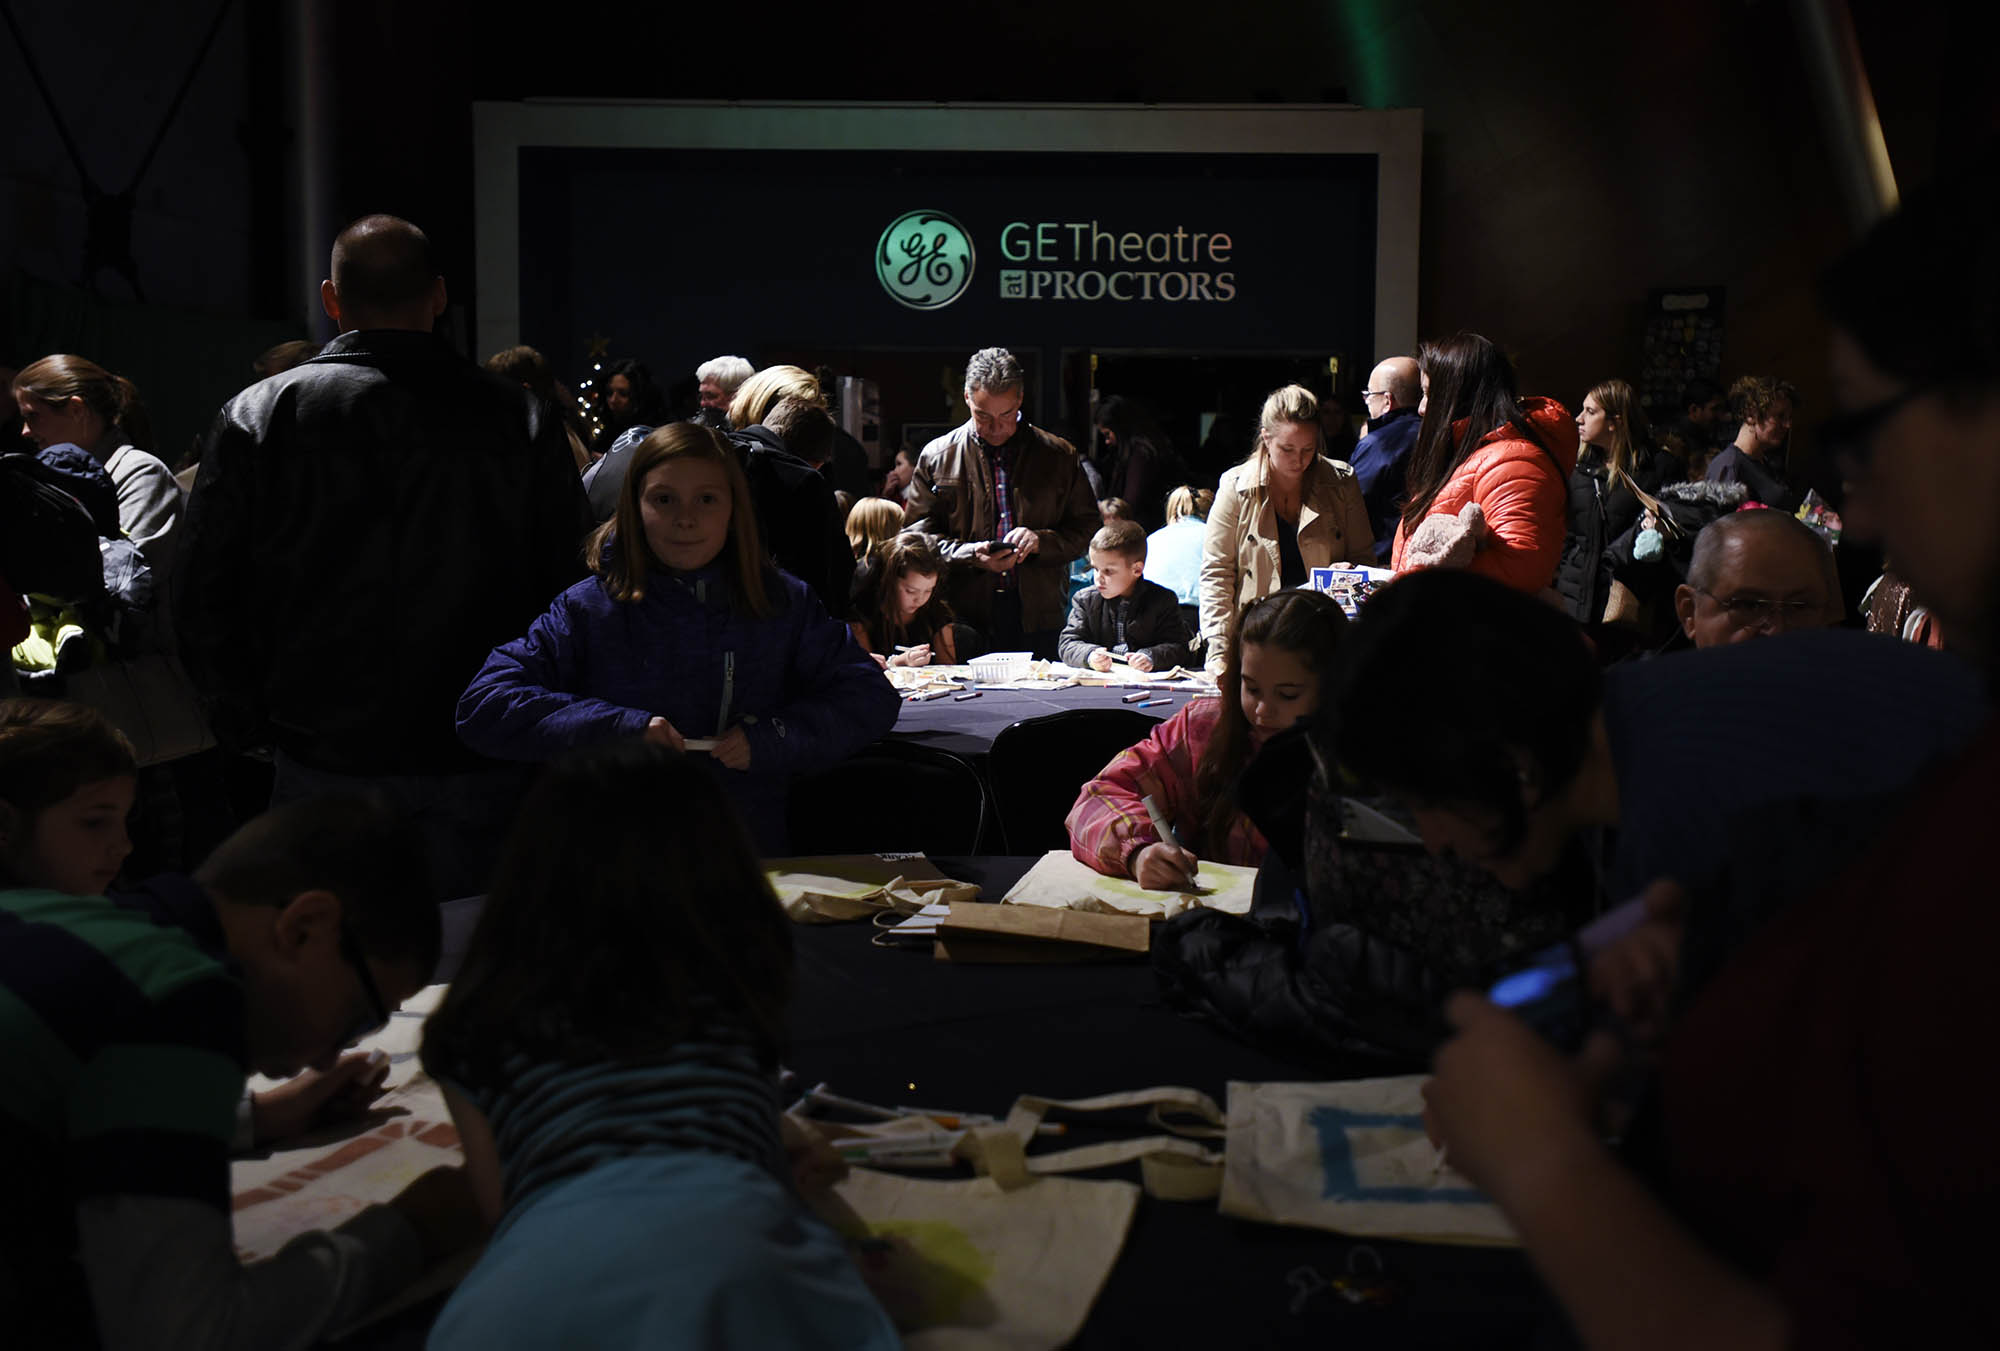 Children and families filled the GE Theatre and Robb Alley making arts and crafts, learning dances, having their faces painted and more during the first Kids Night on Broadway at Proctors before Finding Neverland Wednesday, December 6, 2017.